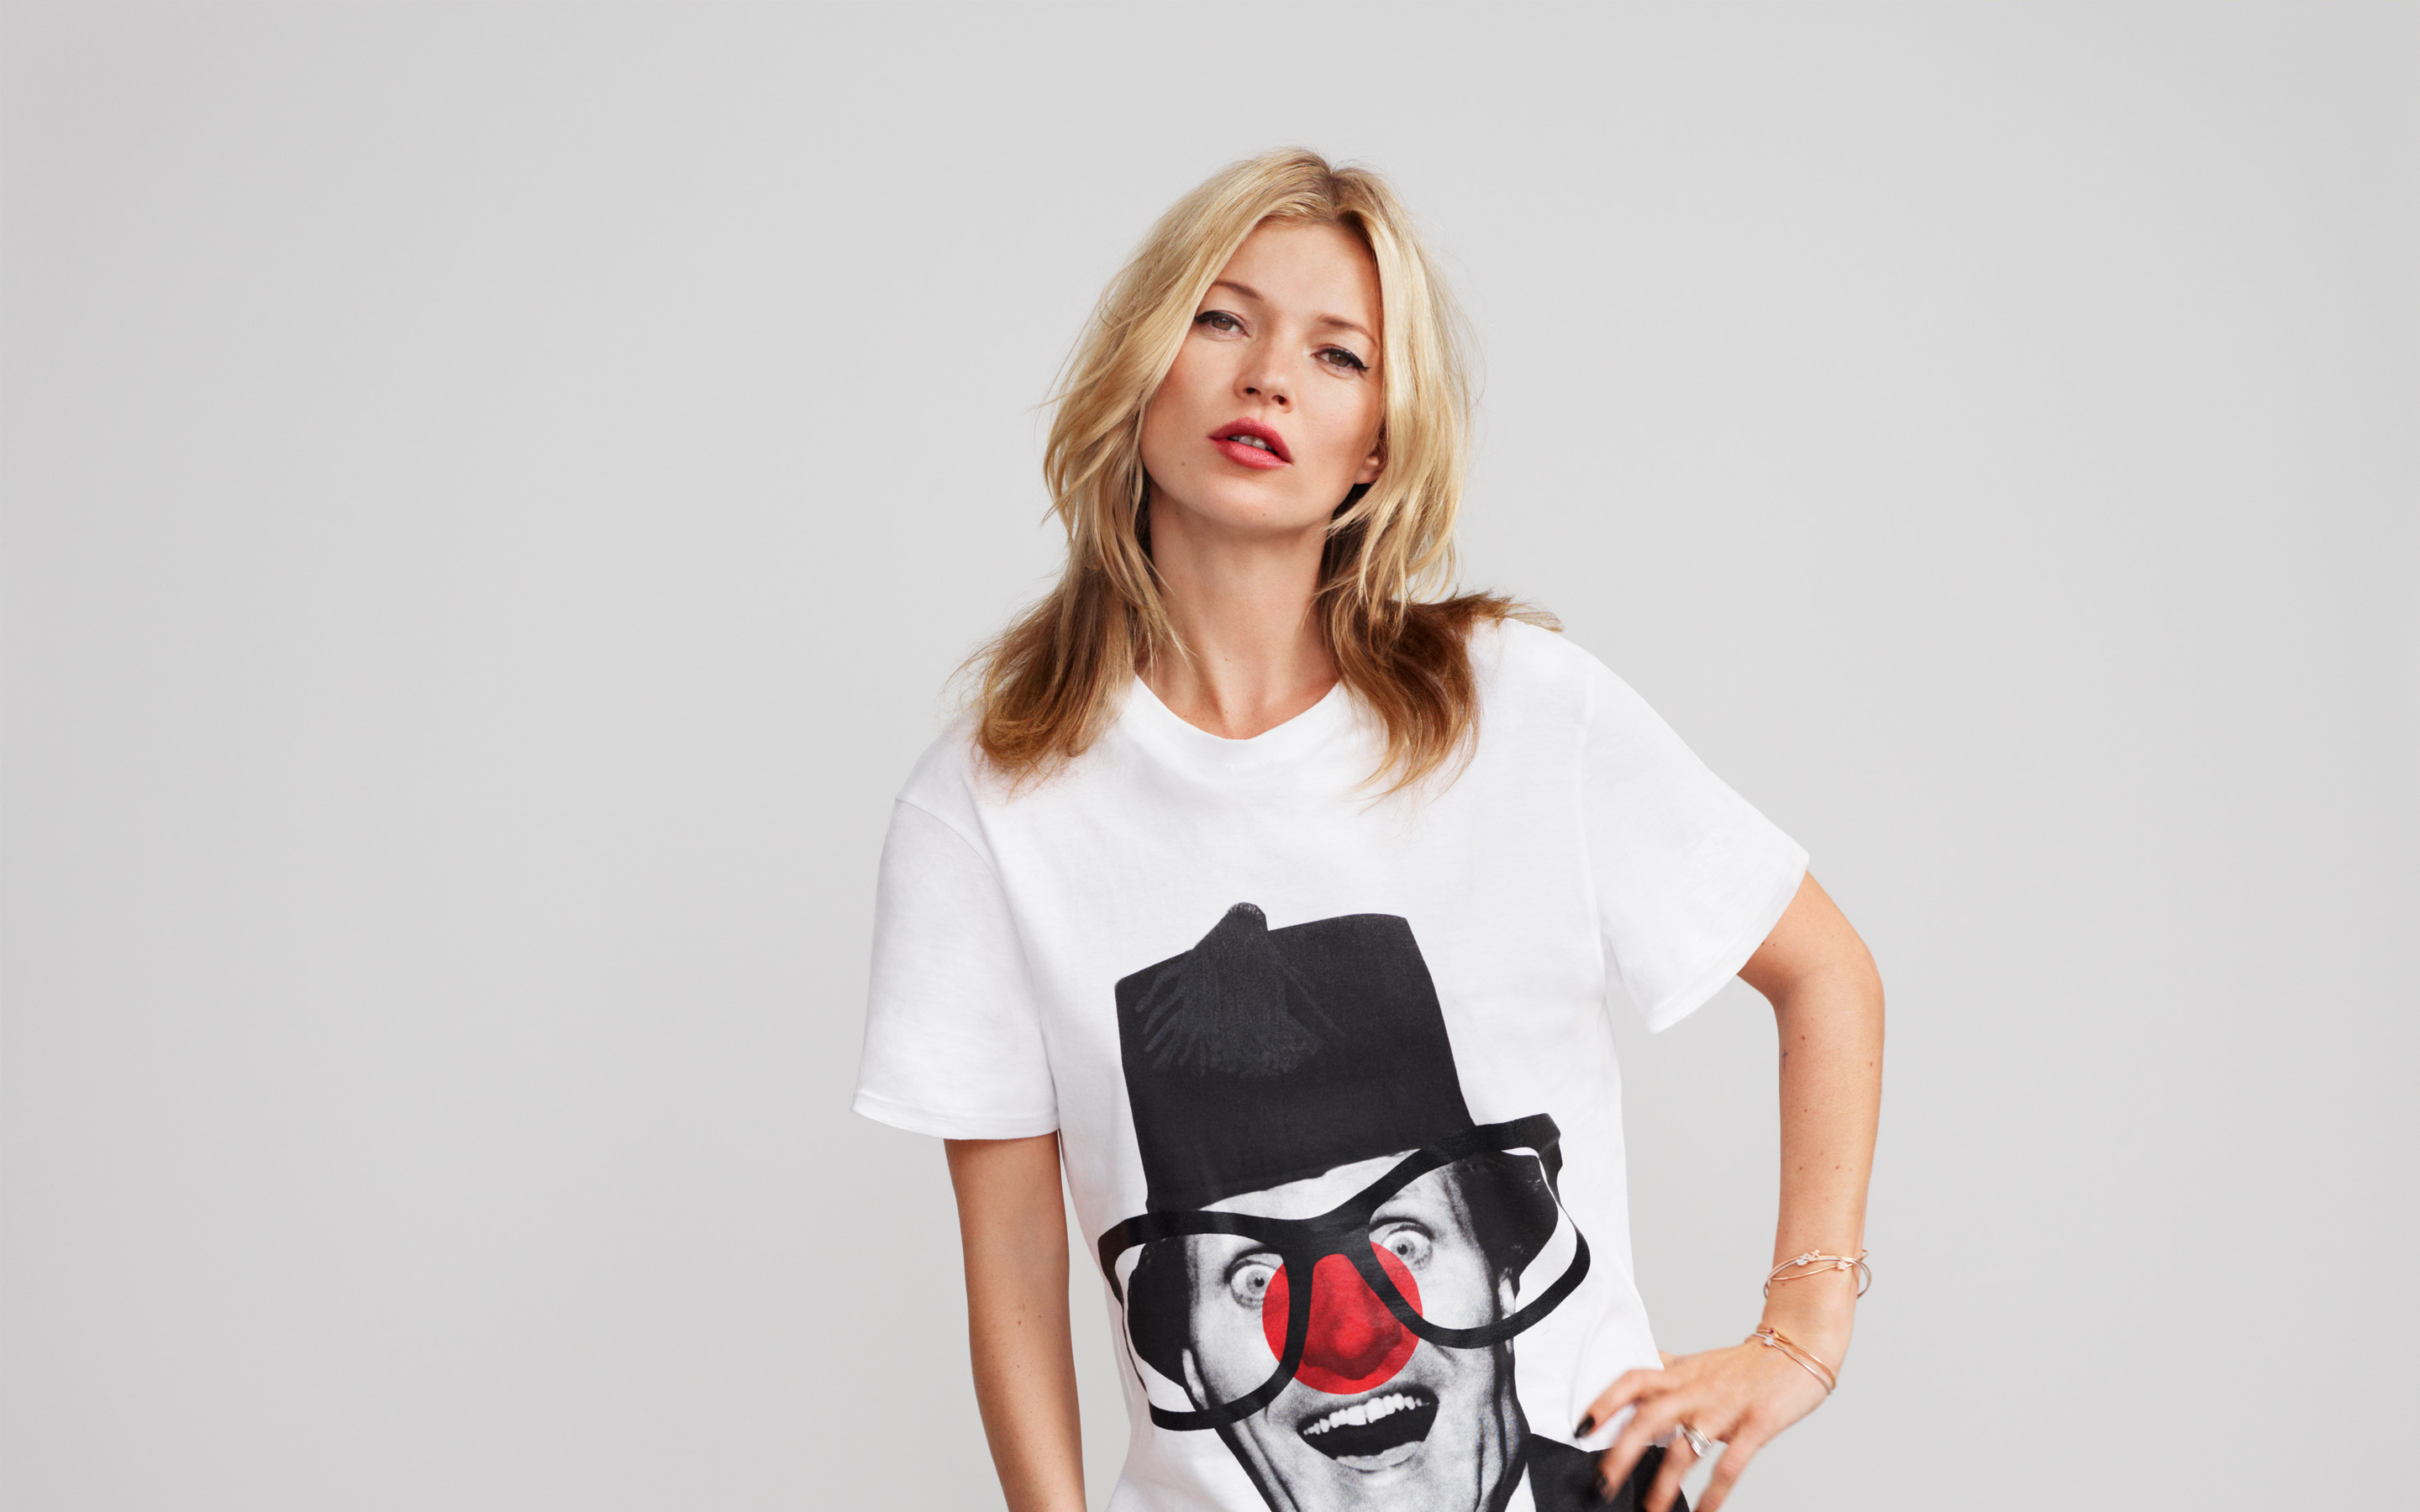 2880x1800 - Kate Moss Wallpapers 23